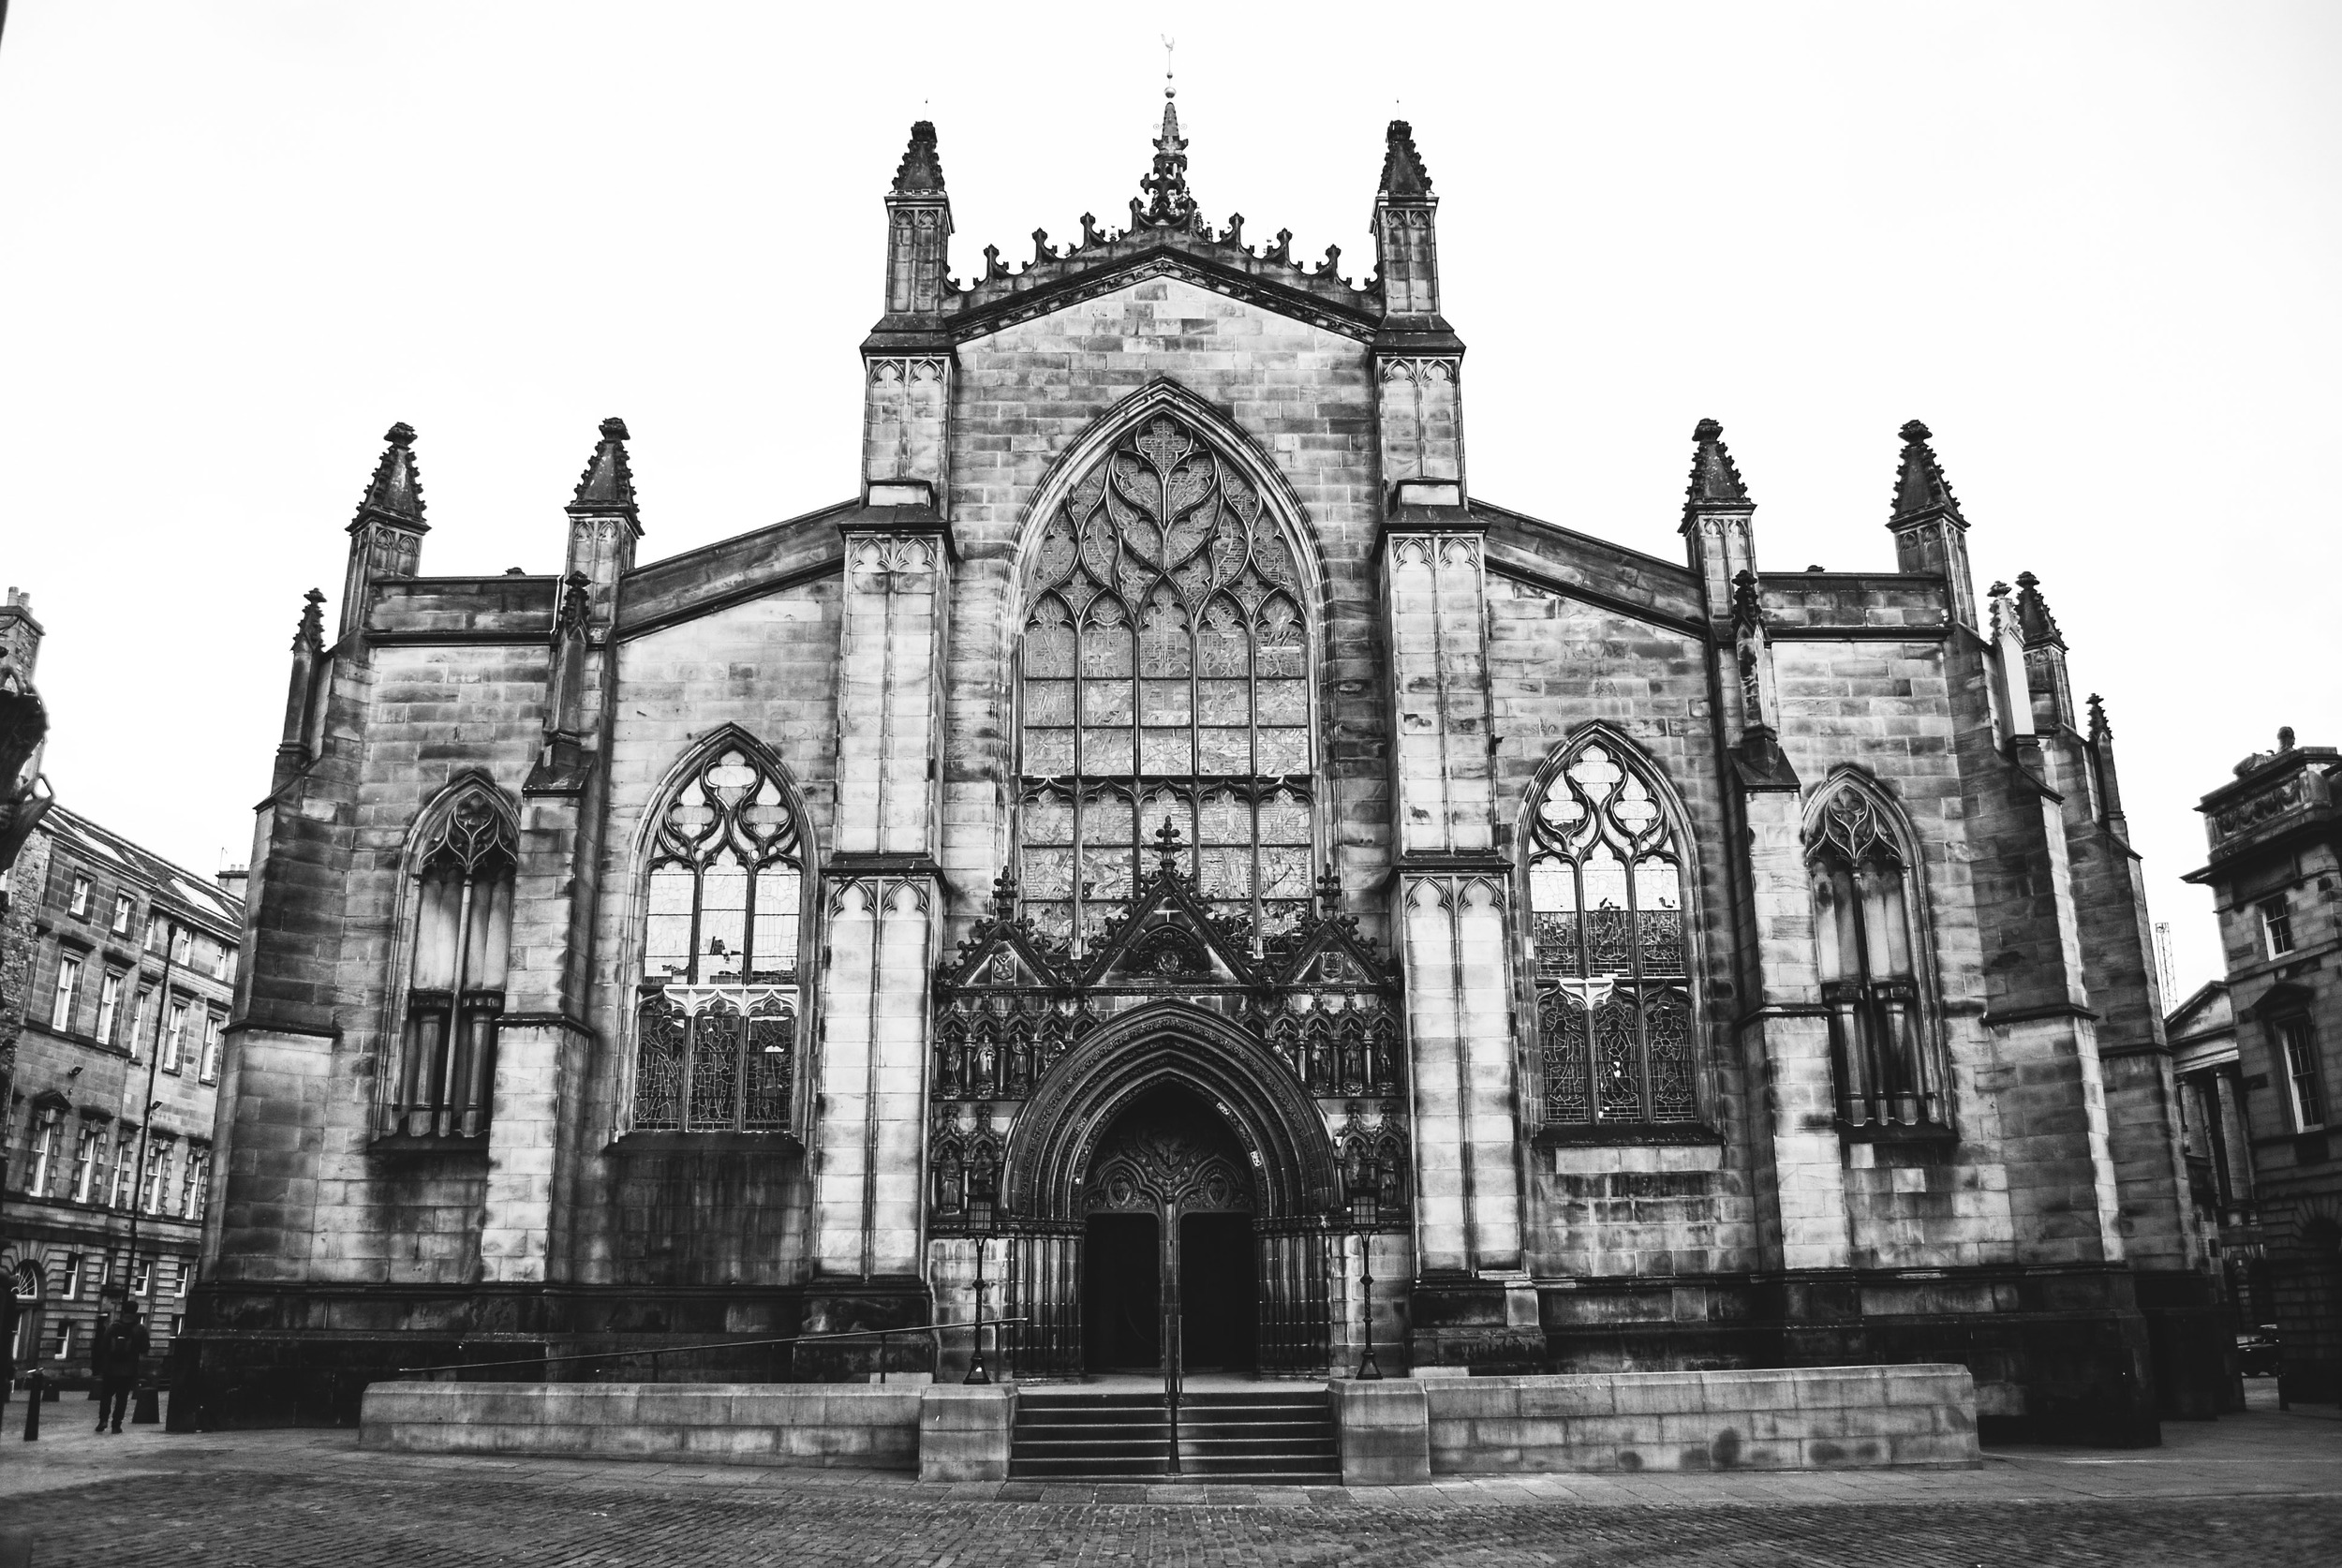 St. Giles Cathedral, Scotland